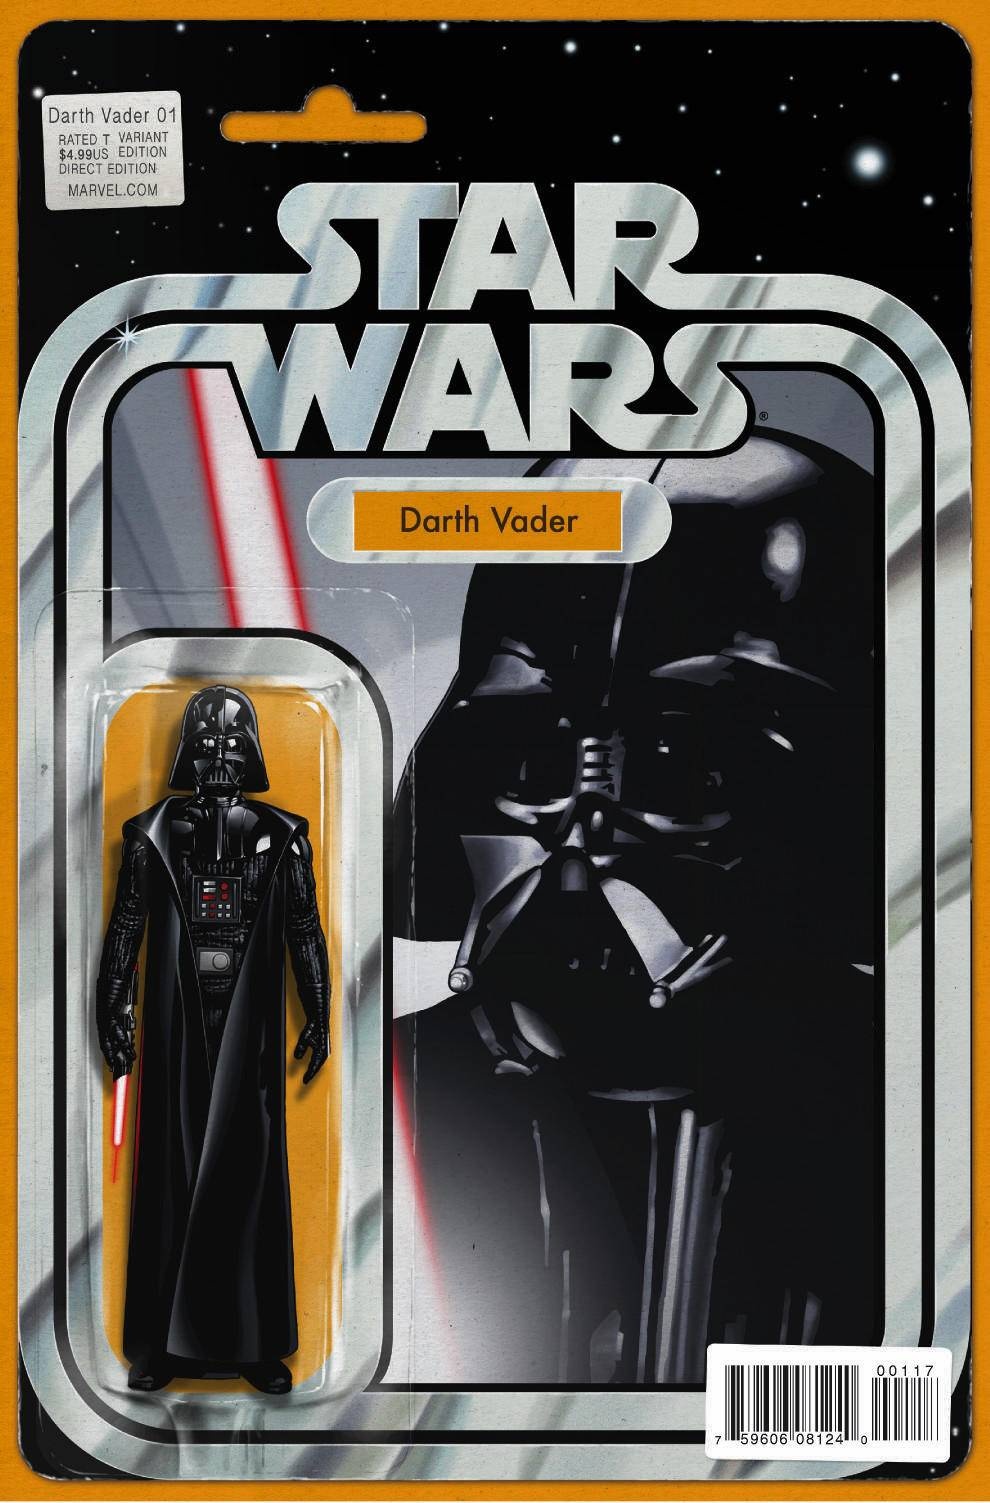 Star_Wars_Darth_Vader_Vol_1_1_Action_Figure_A_Variant